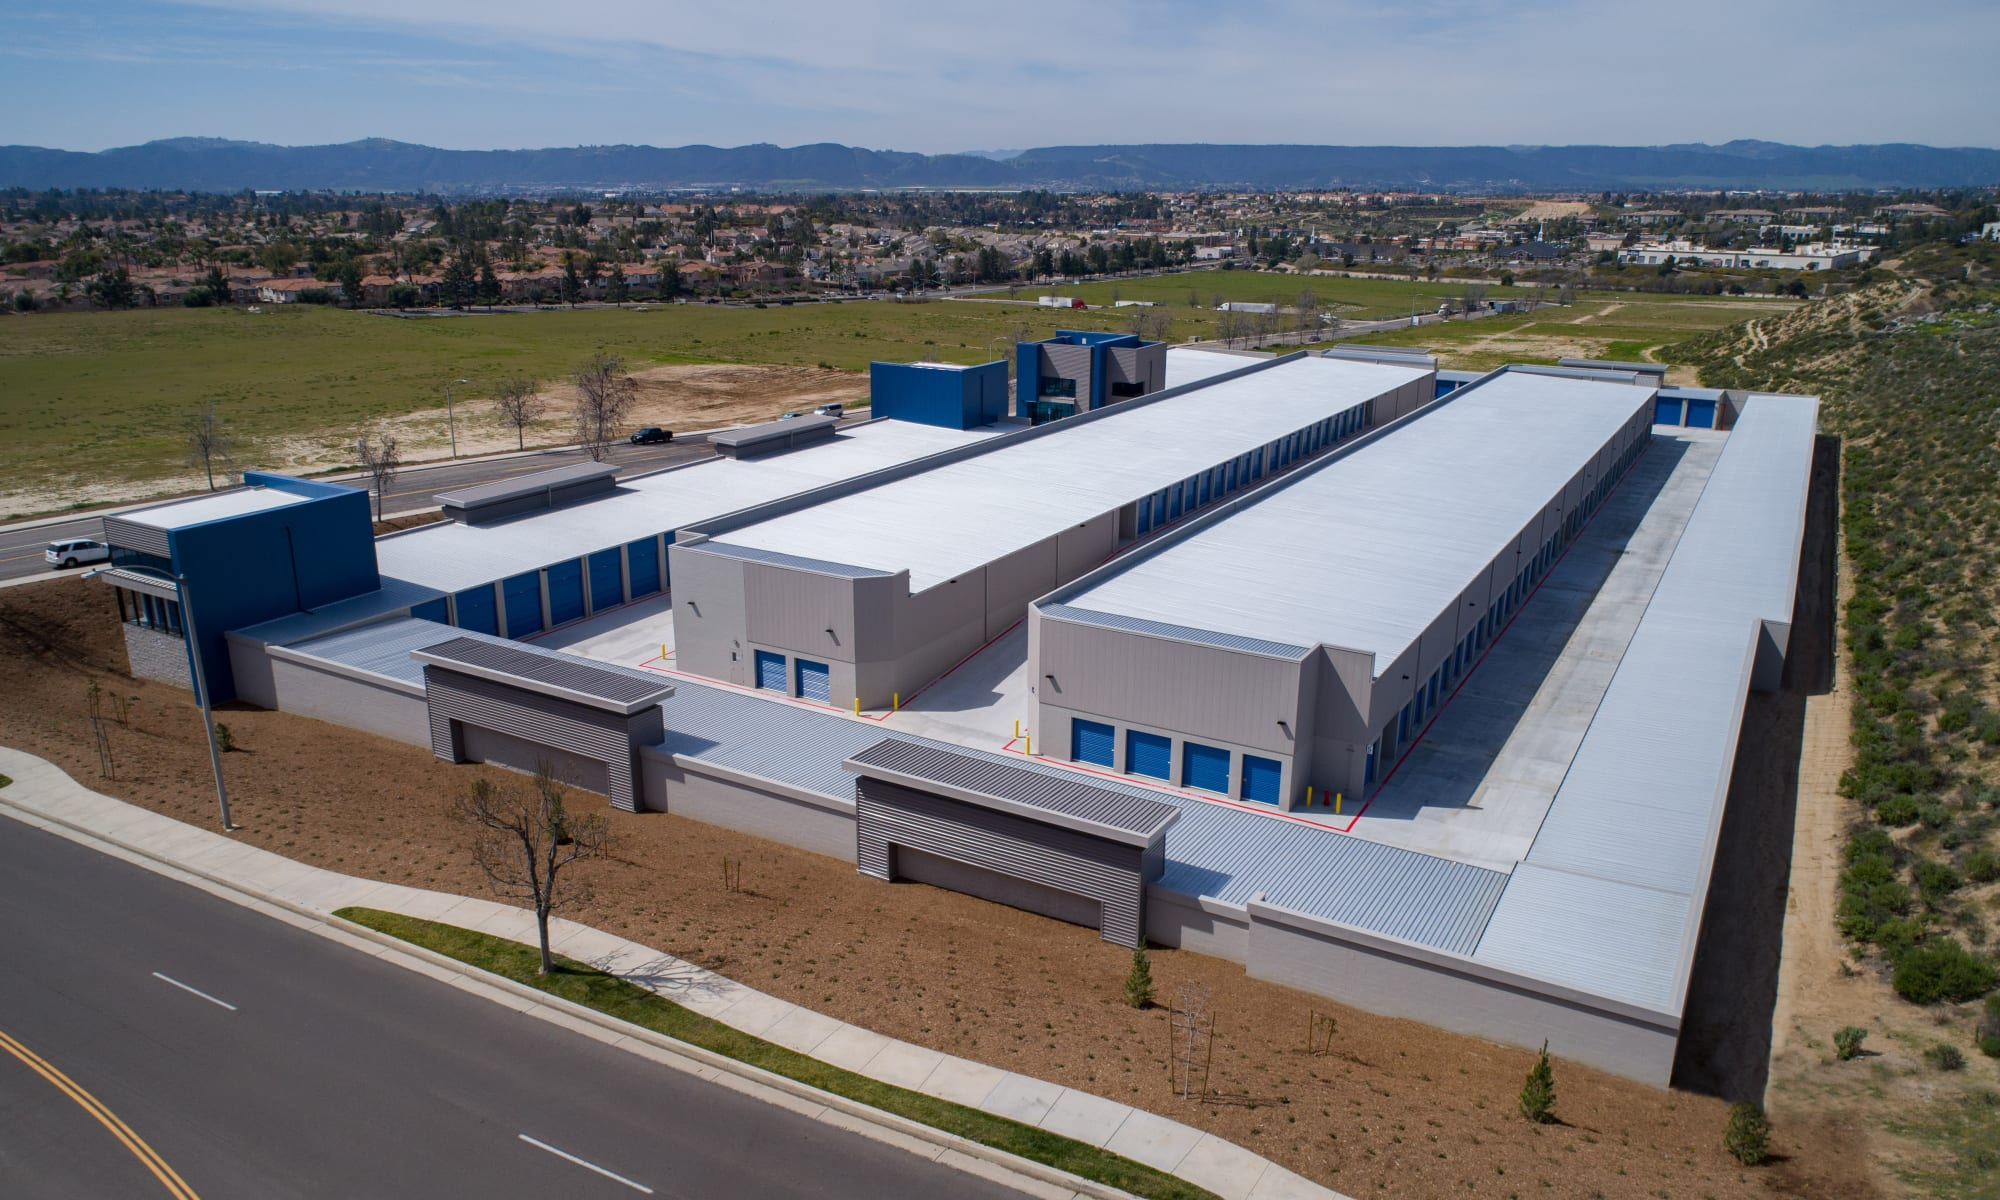 Silverhawk Self Storage in Murrieta, California is home to the 1st Year Price Guarantee.